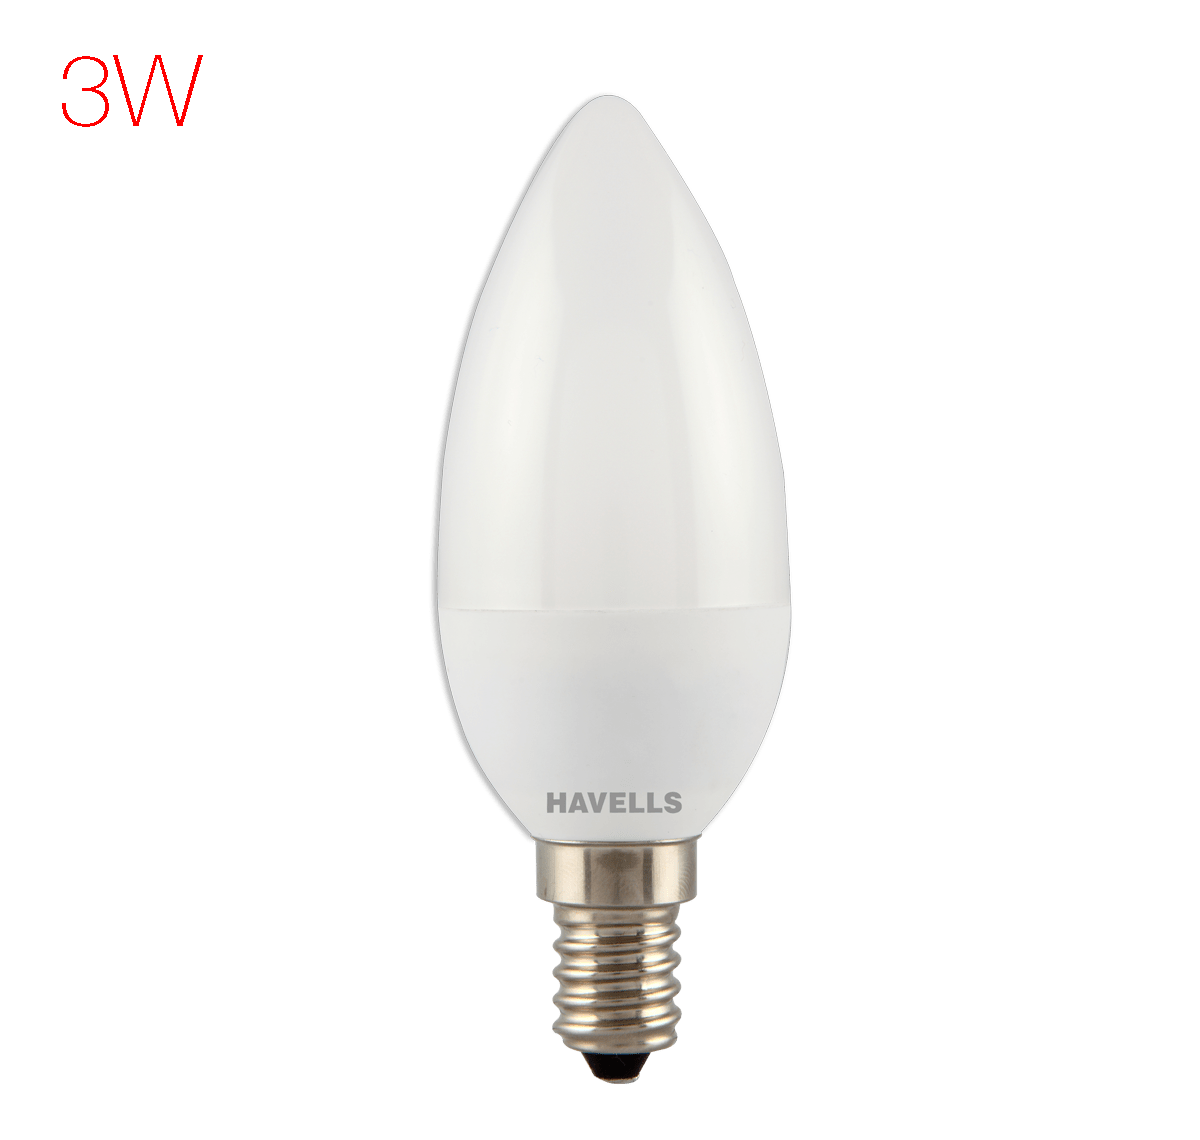 60 E14 Lumen Havells New Adore Led 3w Candle E14 Warm White Regular Led Lamp